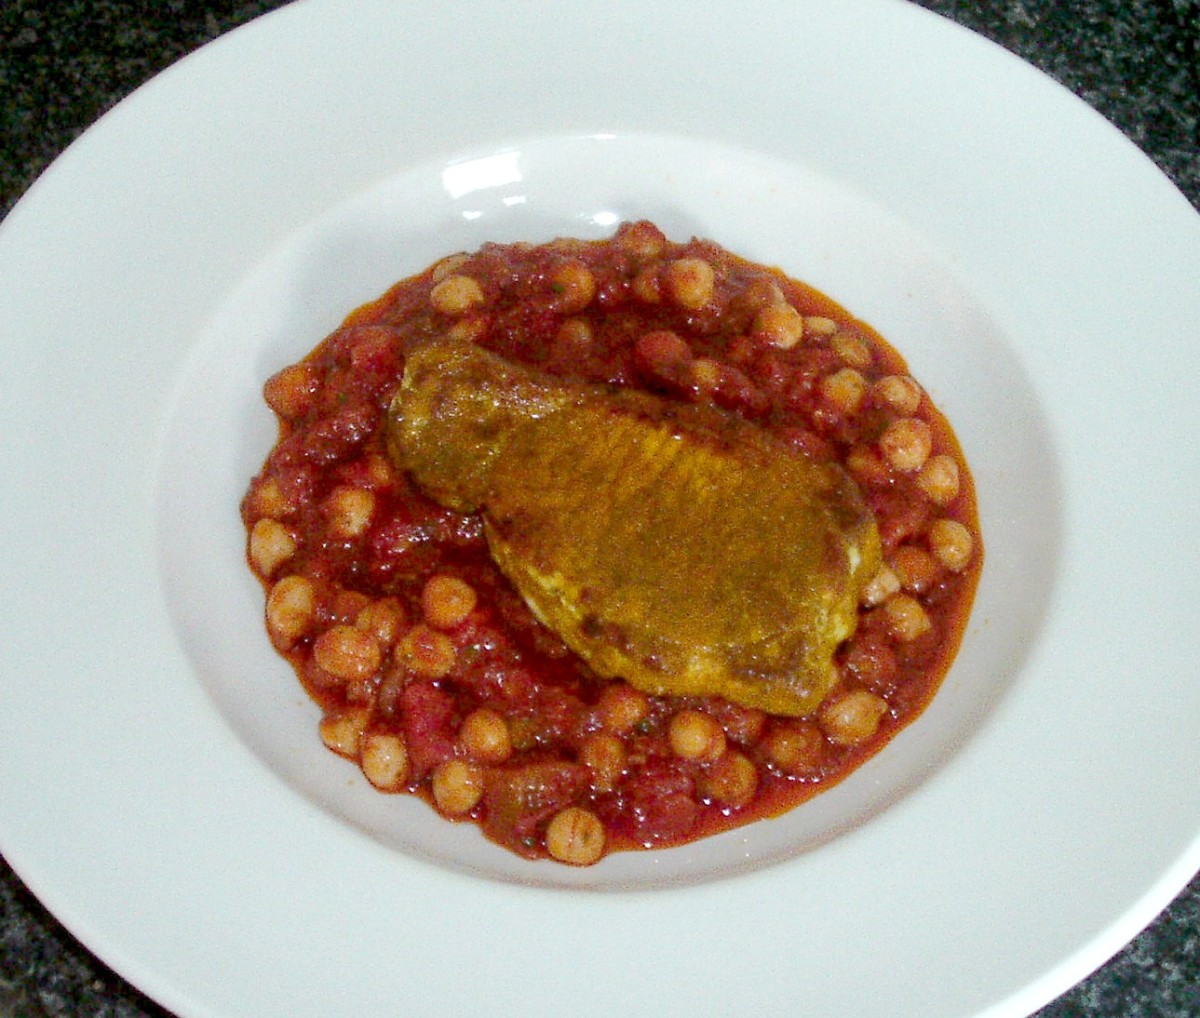 Turmeric spiced pork steak is laid on chickpeas